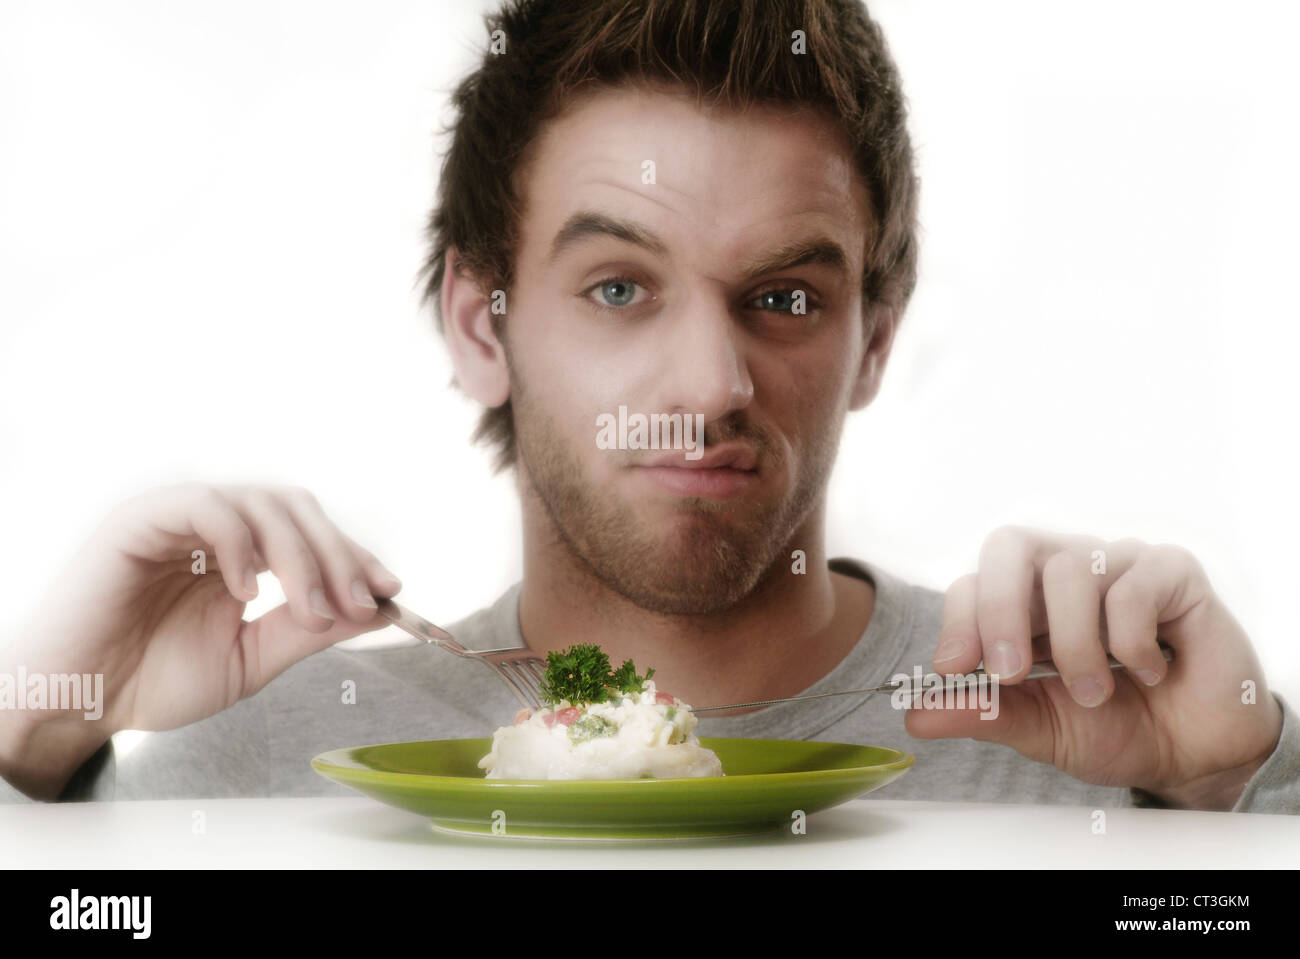 MAN EATING A MEAL - Stock Image